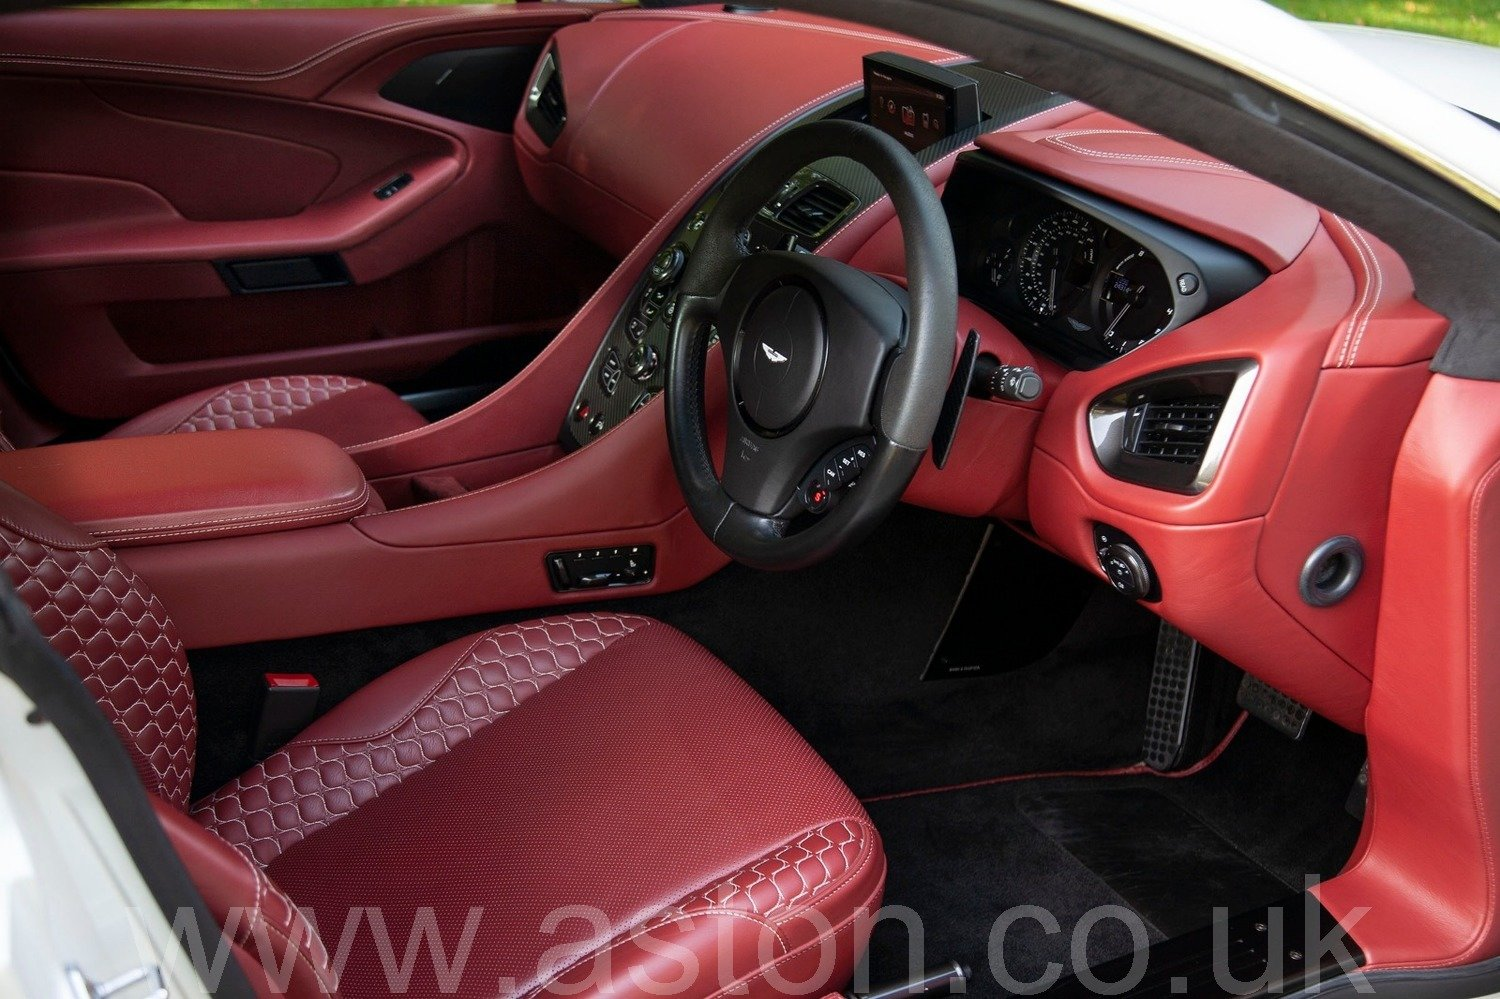 2013 Vanquish 6.0 V12 Touchtronic 2+2 For Sale (picture 3 of 6)